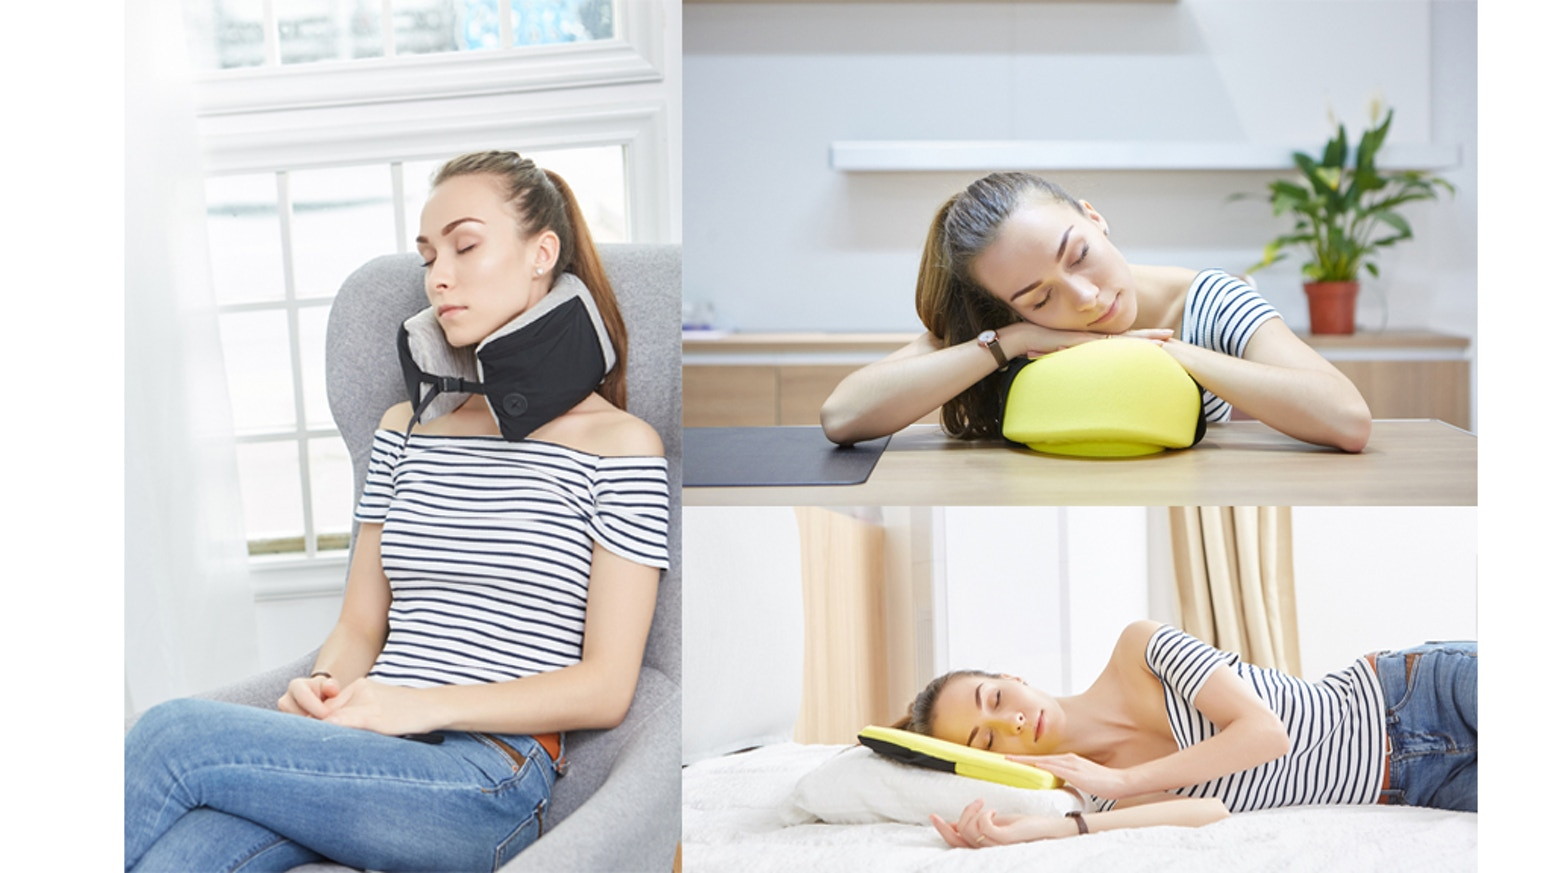 Sleep and rest effortless than ever before with the portable, relaxing, and multifunctional Comfy Travel Pillow.